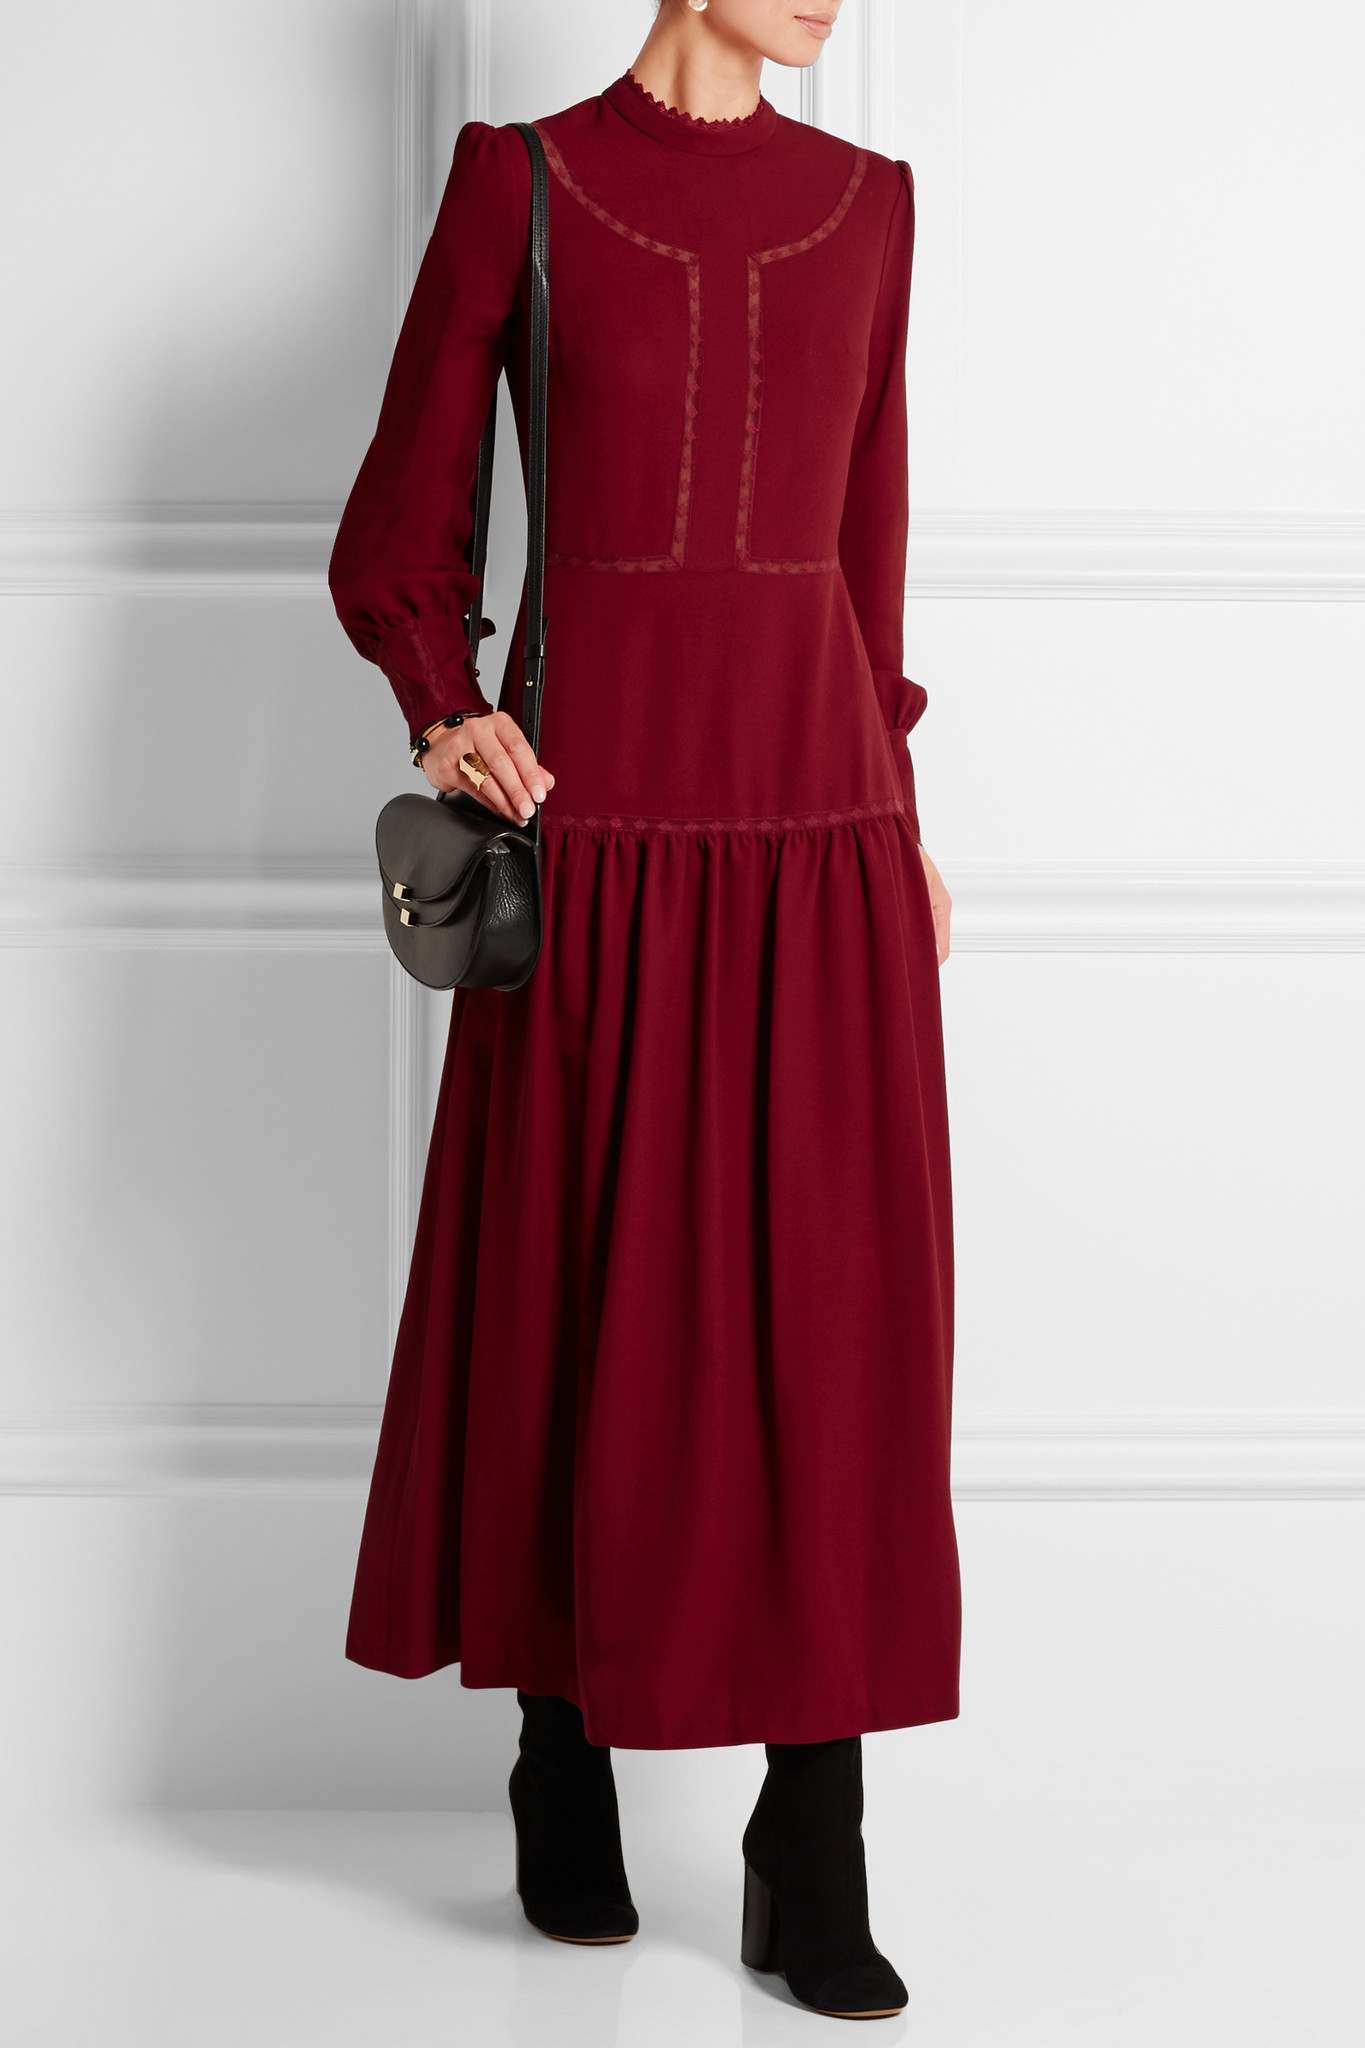 Vilshenko Lara Embroidered Crepe Midi Dress In Red Lyst Clarette Sneakers Christelle White Gallery